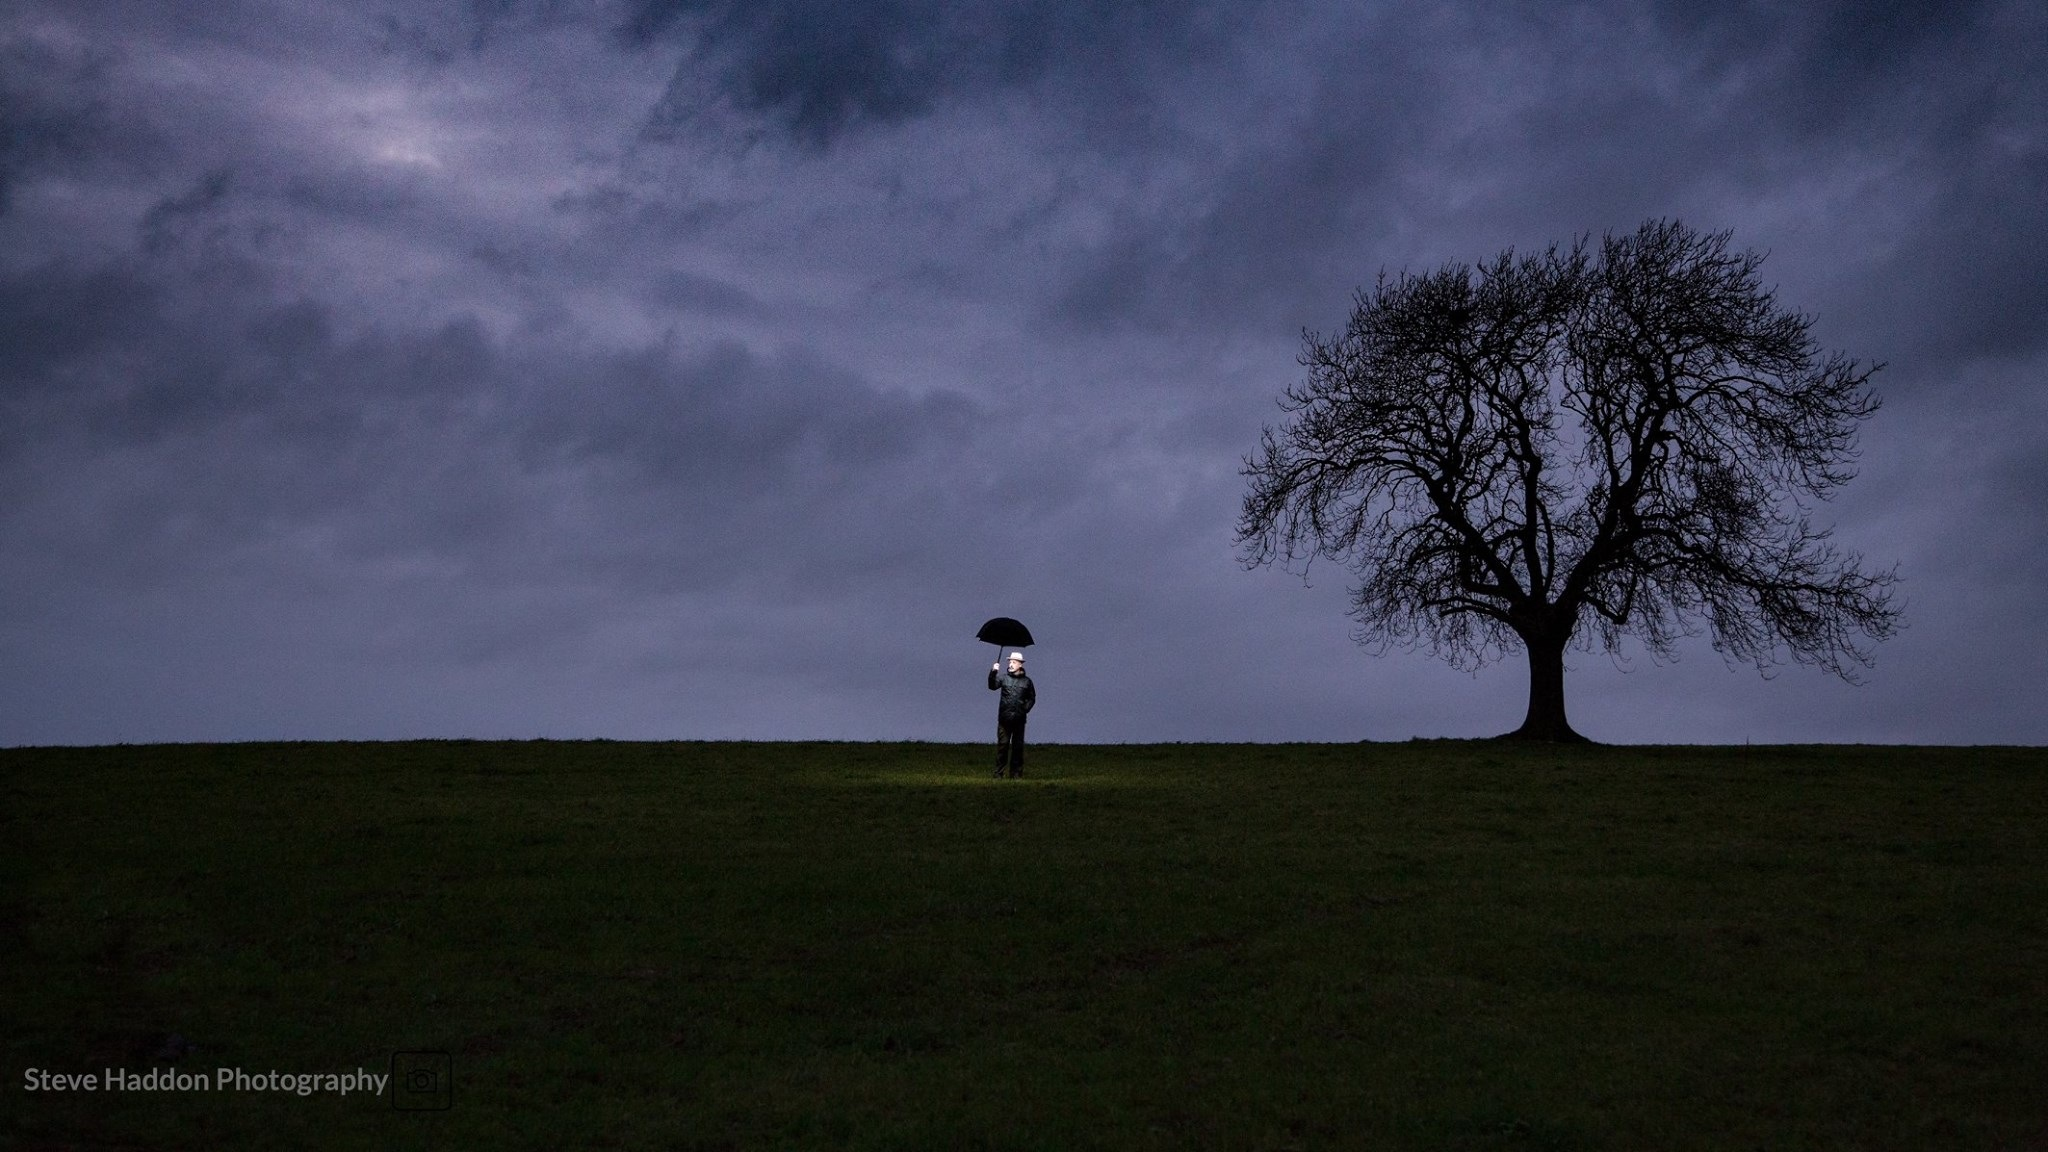 Lonely tree, alone man by Steve H